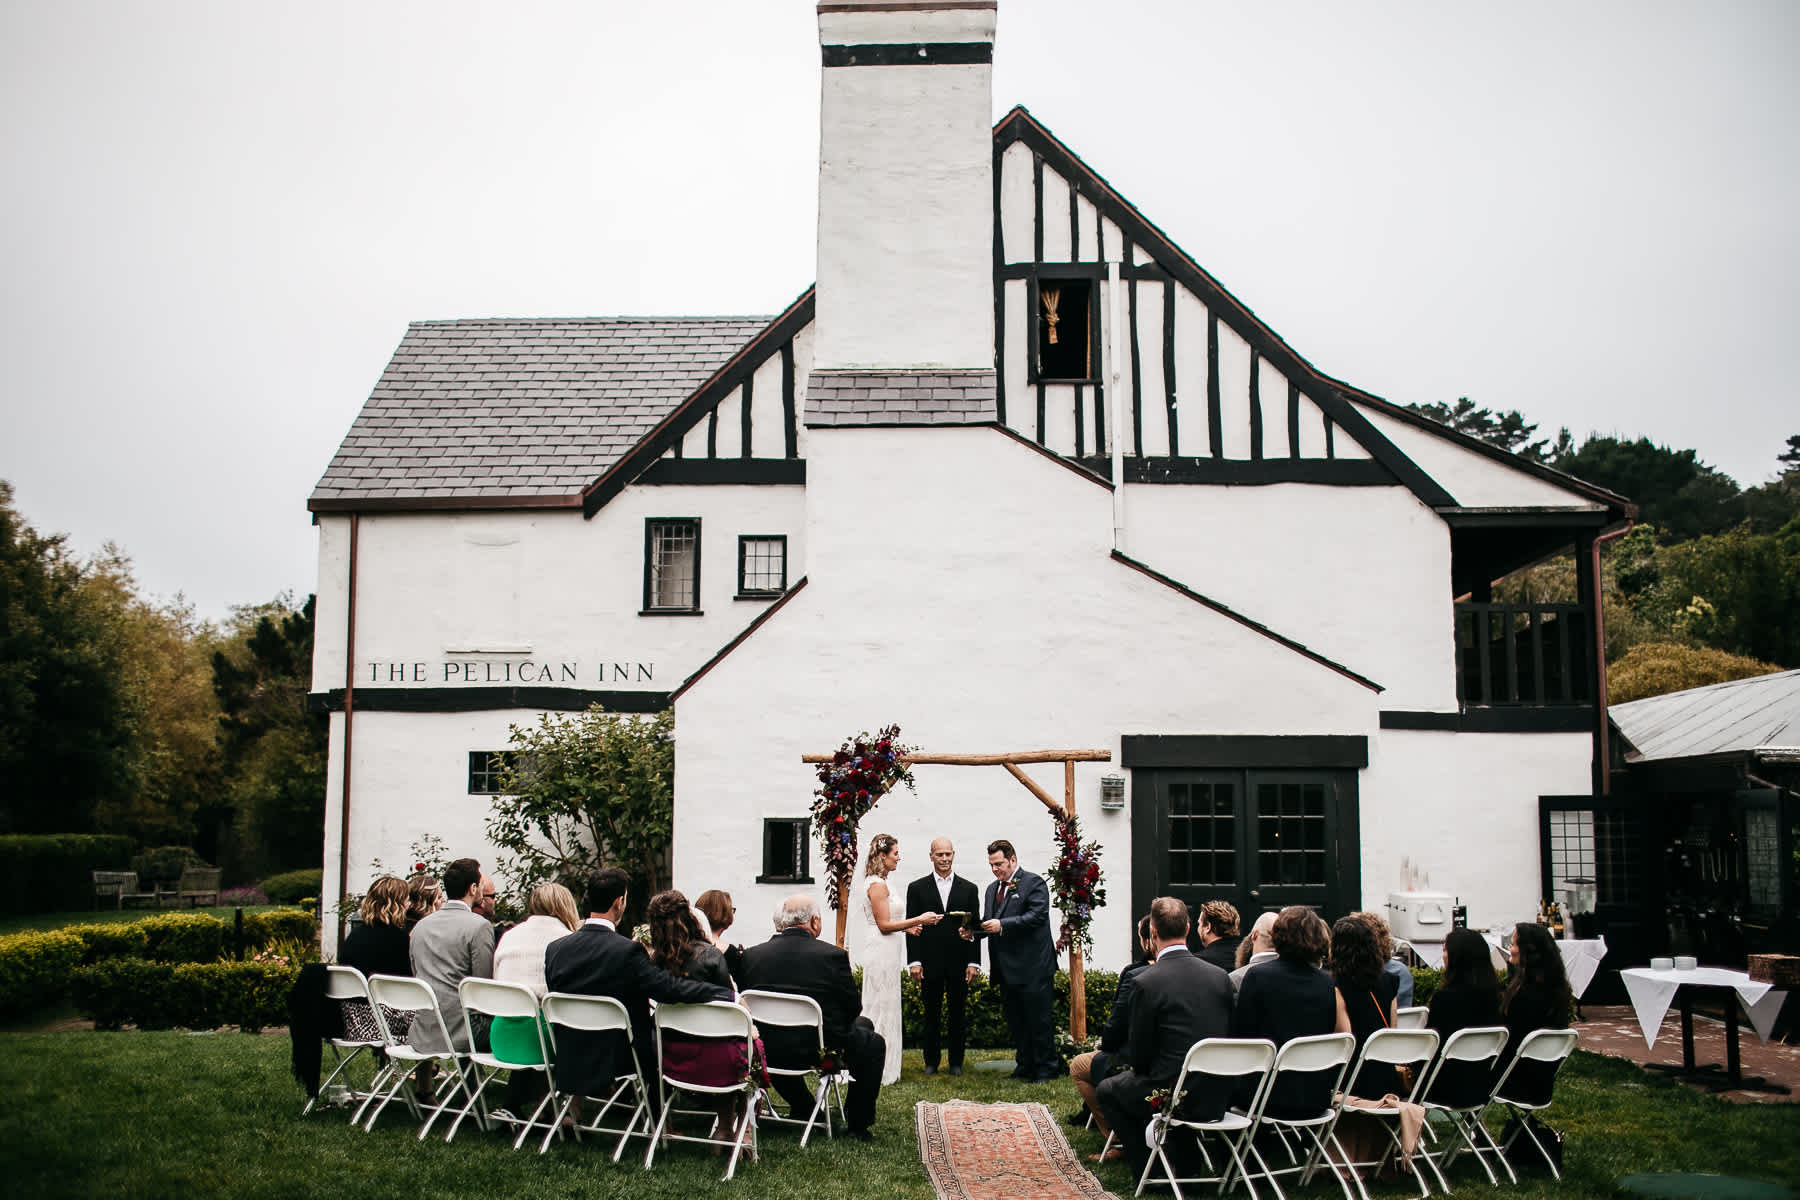 muir-beach-pelican-inn-foggy-wedding-42